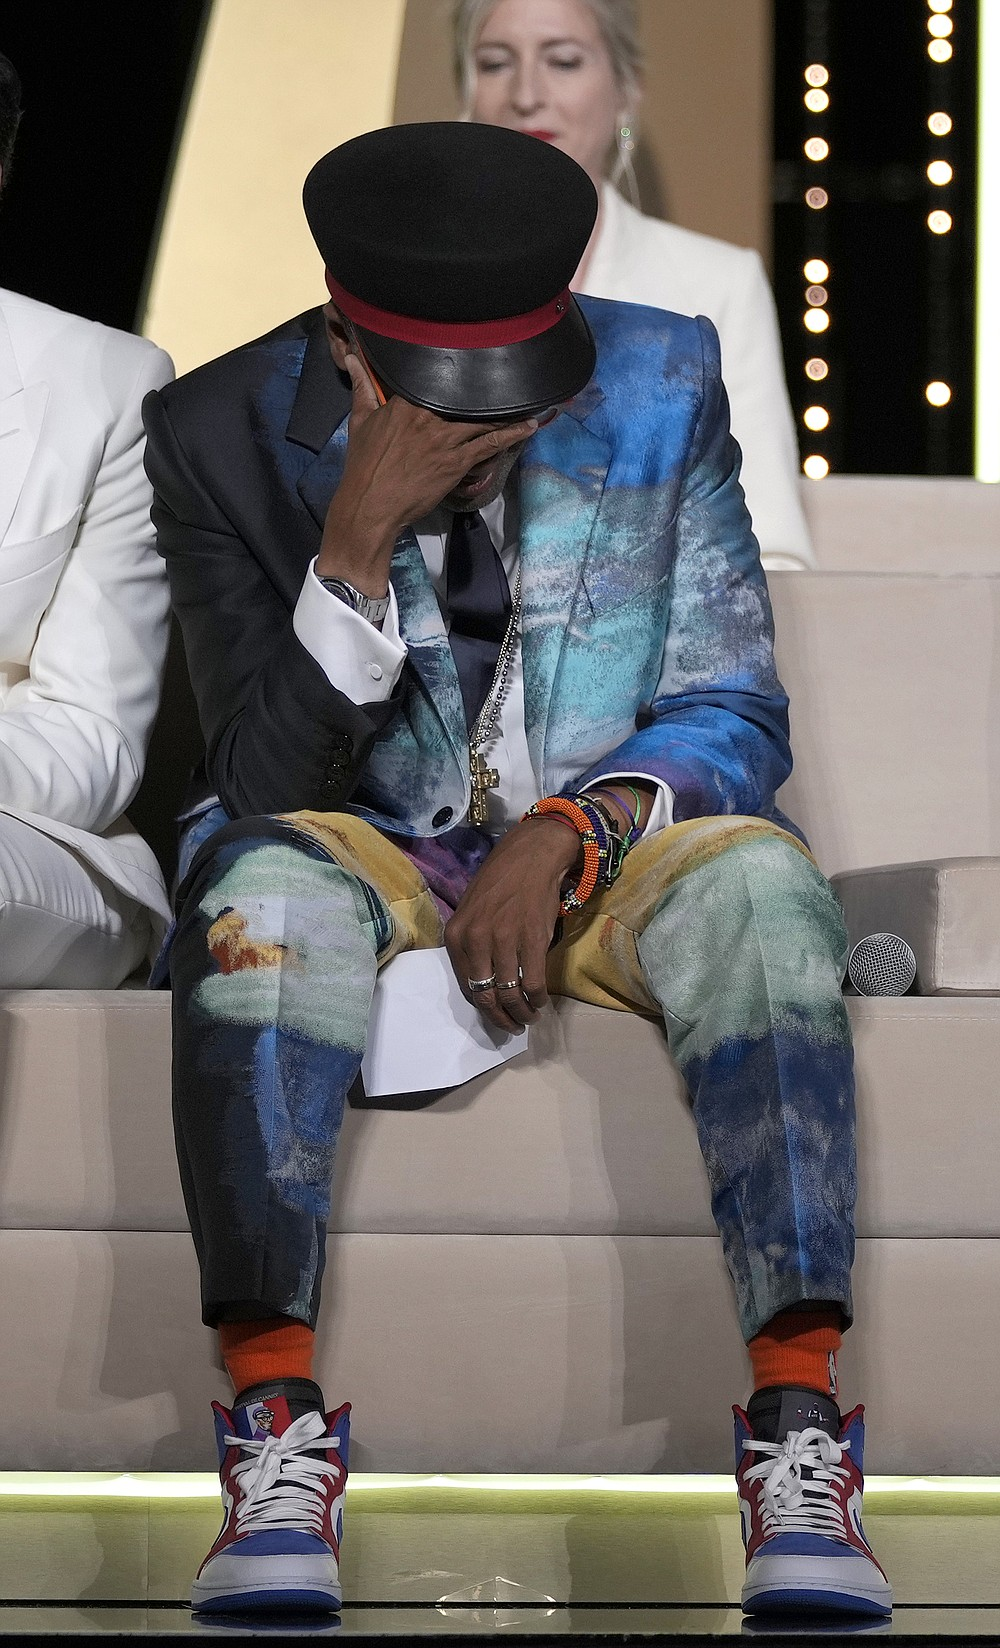 Jury president Spike Lee holds his head in hands after accidentally revealing the film 'Titane' as the winner of the Palme d'Or during the awards ceremony at the 74th international film festival, Cannes, southern France, Saturday, July 17, 2021. (AP Photo/Vadim Ghirda)